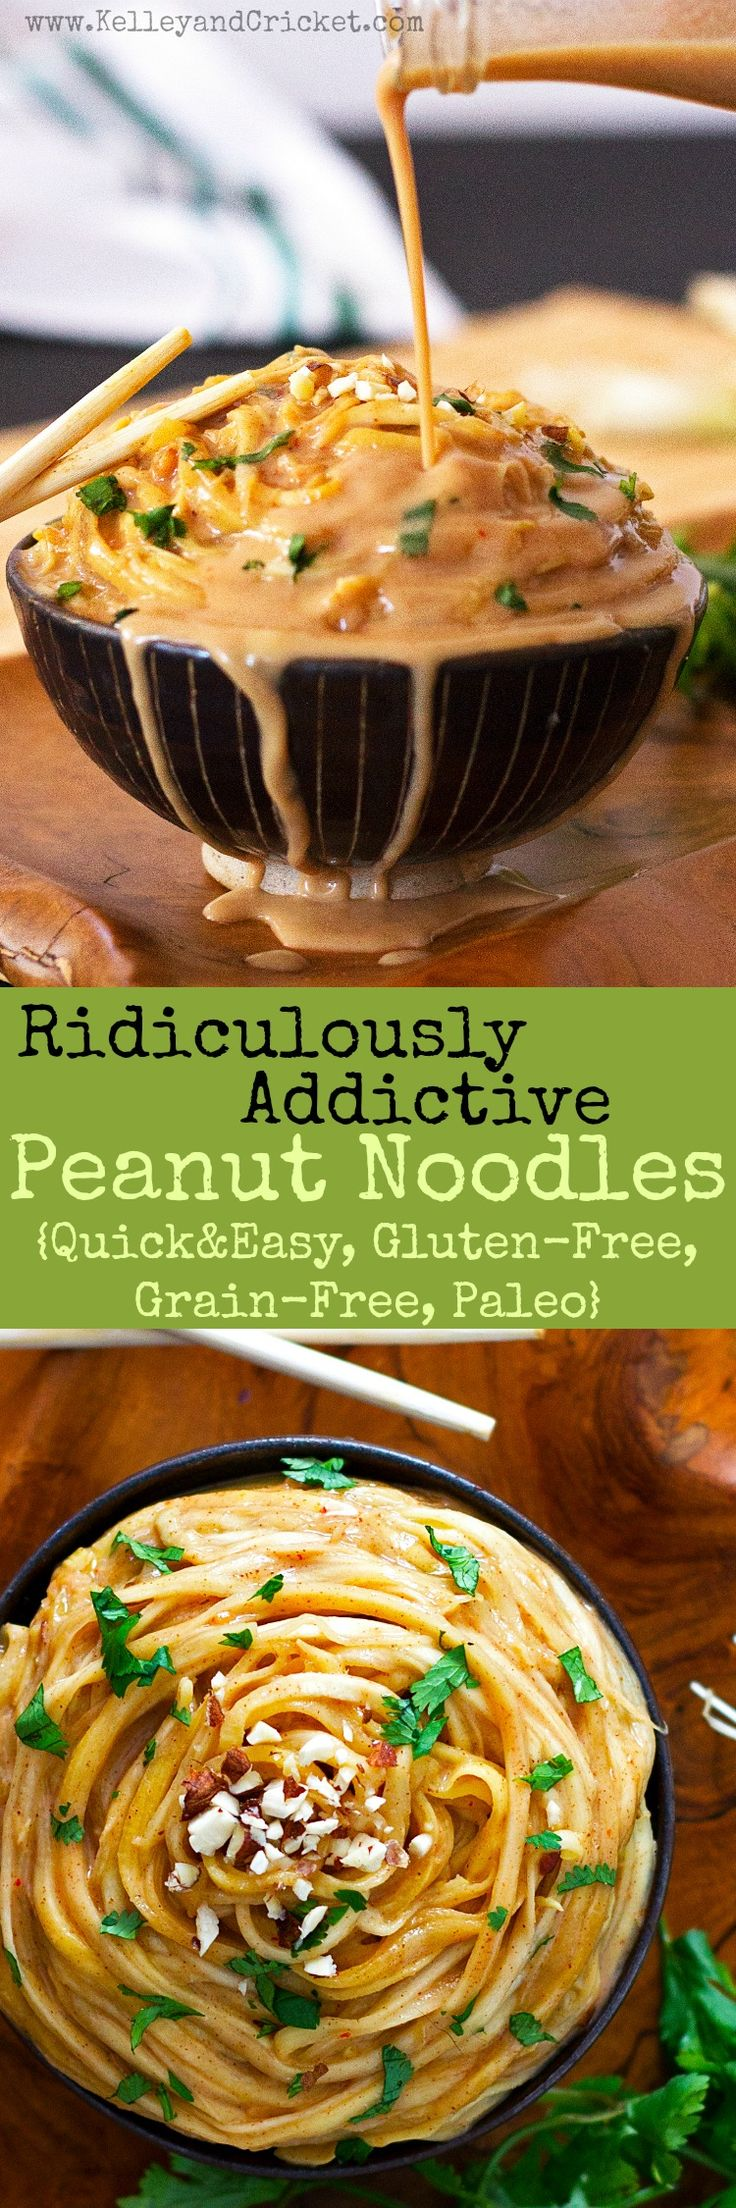 peanut noodles -- Gluten-free, grain-free, and paleo they make a super quick and nutritious lunch and are ready in under 15 minutes!